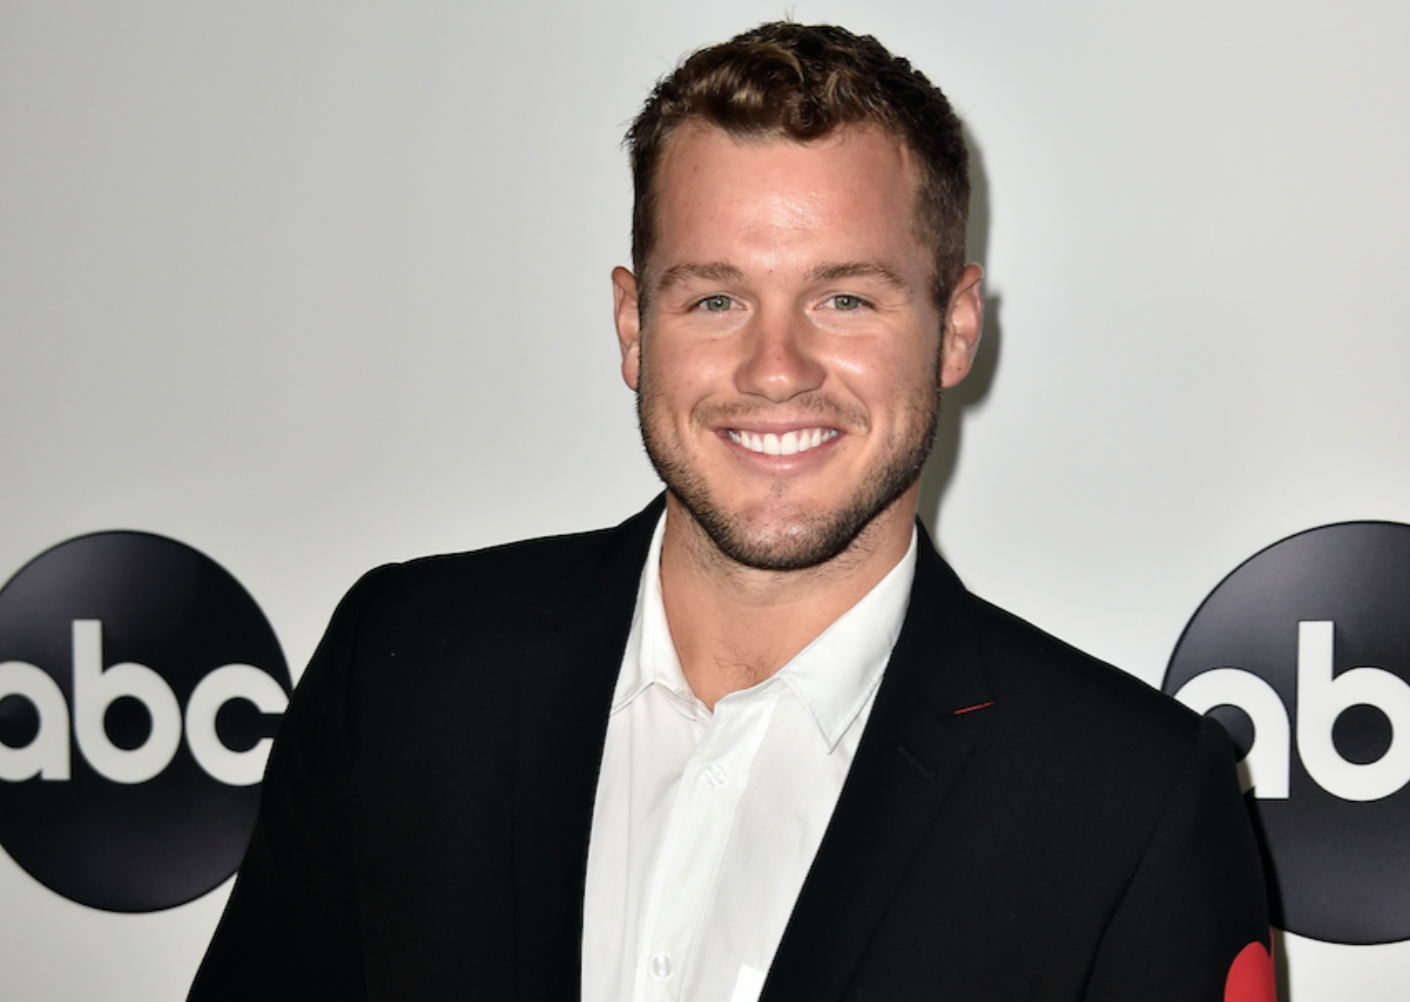 Will Colton Underwood on 'Bachelor in Paradise' Go Home?